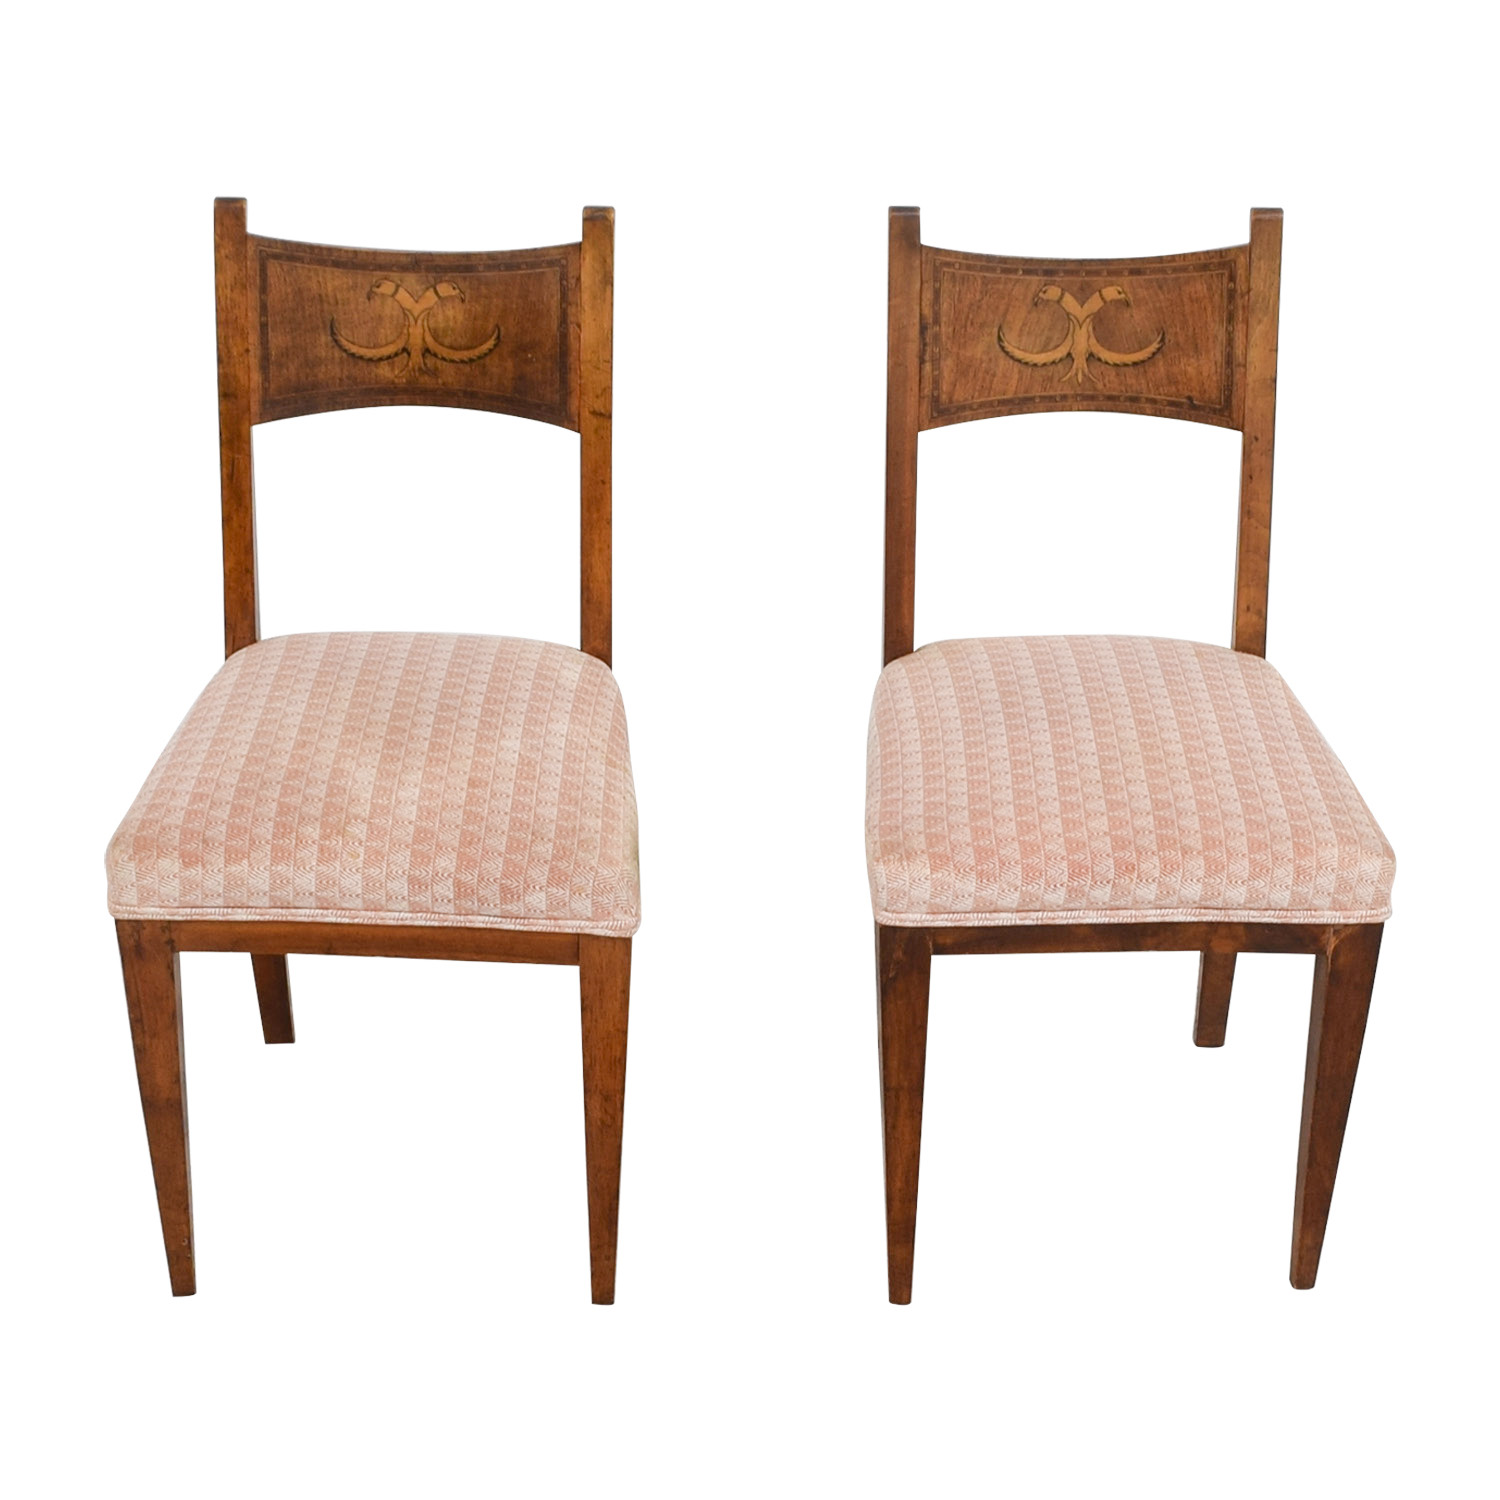 Well-liked 90% OFF - Antique Pink Upholstered Chairs with Bird Wood Inlay  UW63